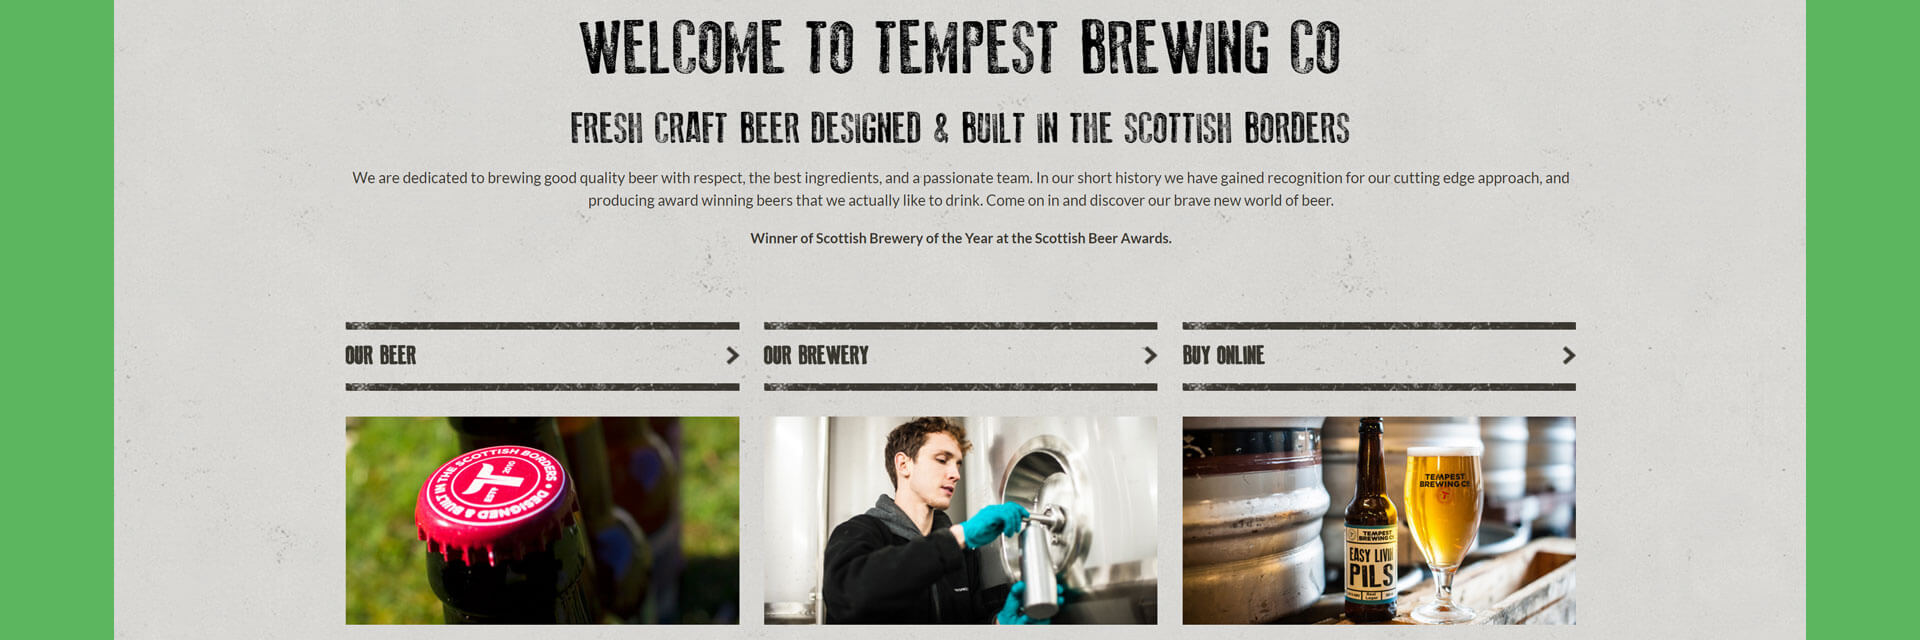 Tempest Brew Co Banner